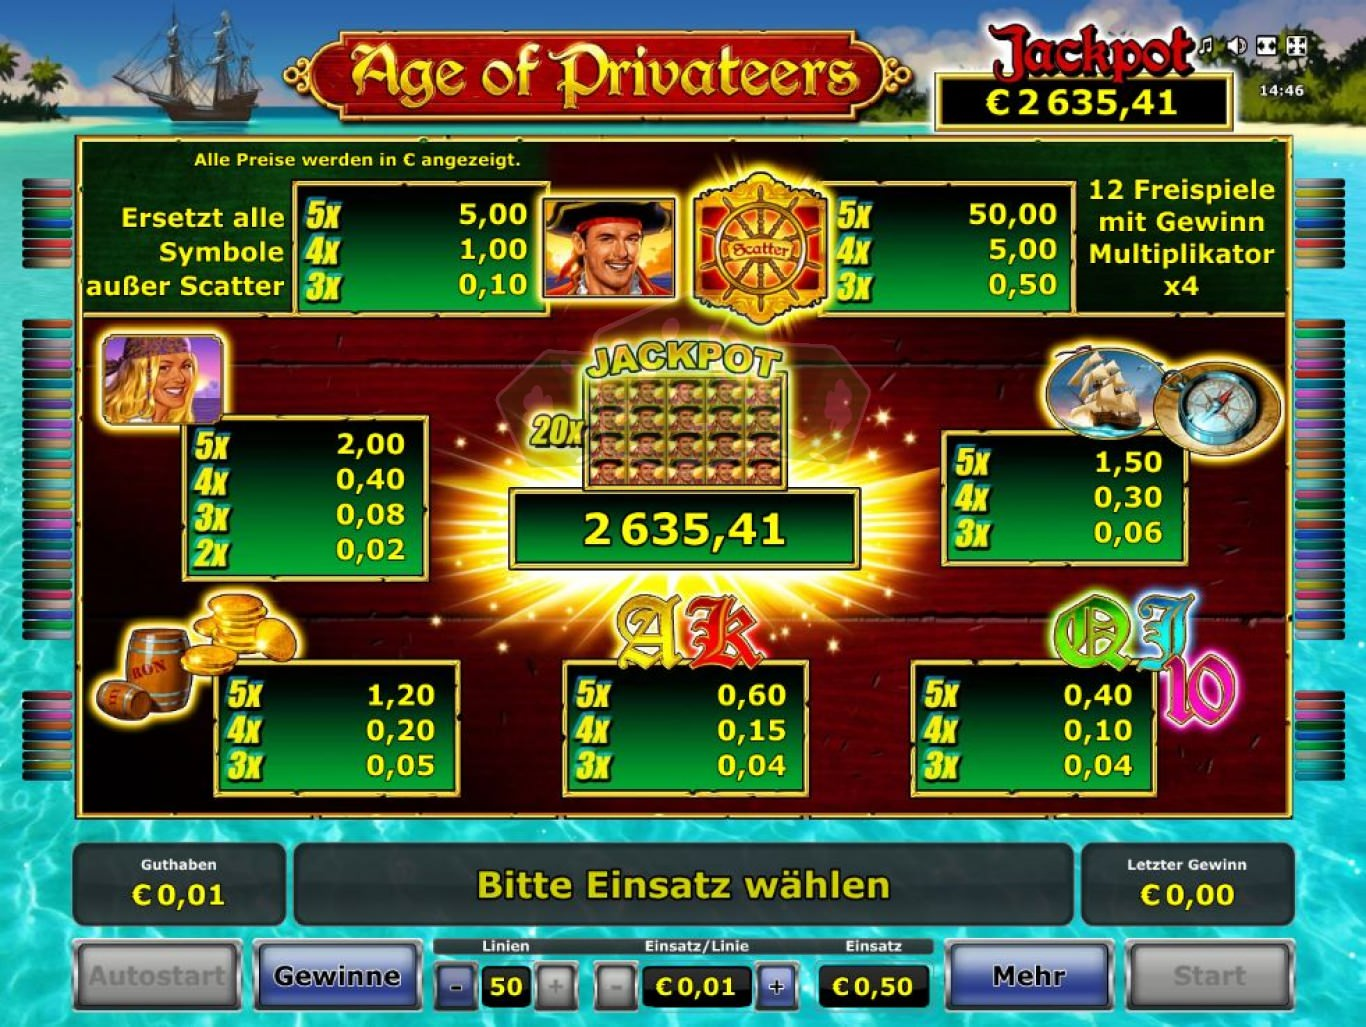 Age Of Privateers Slot Machine